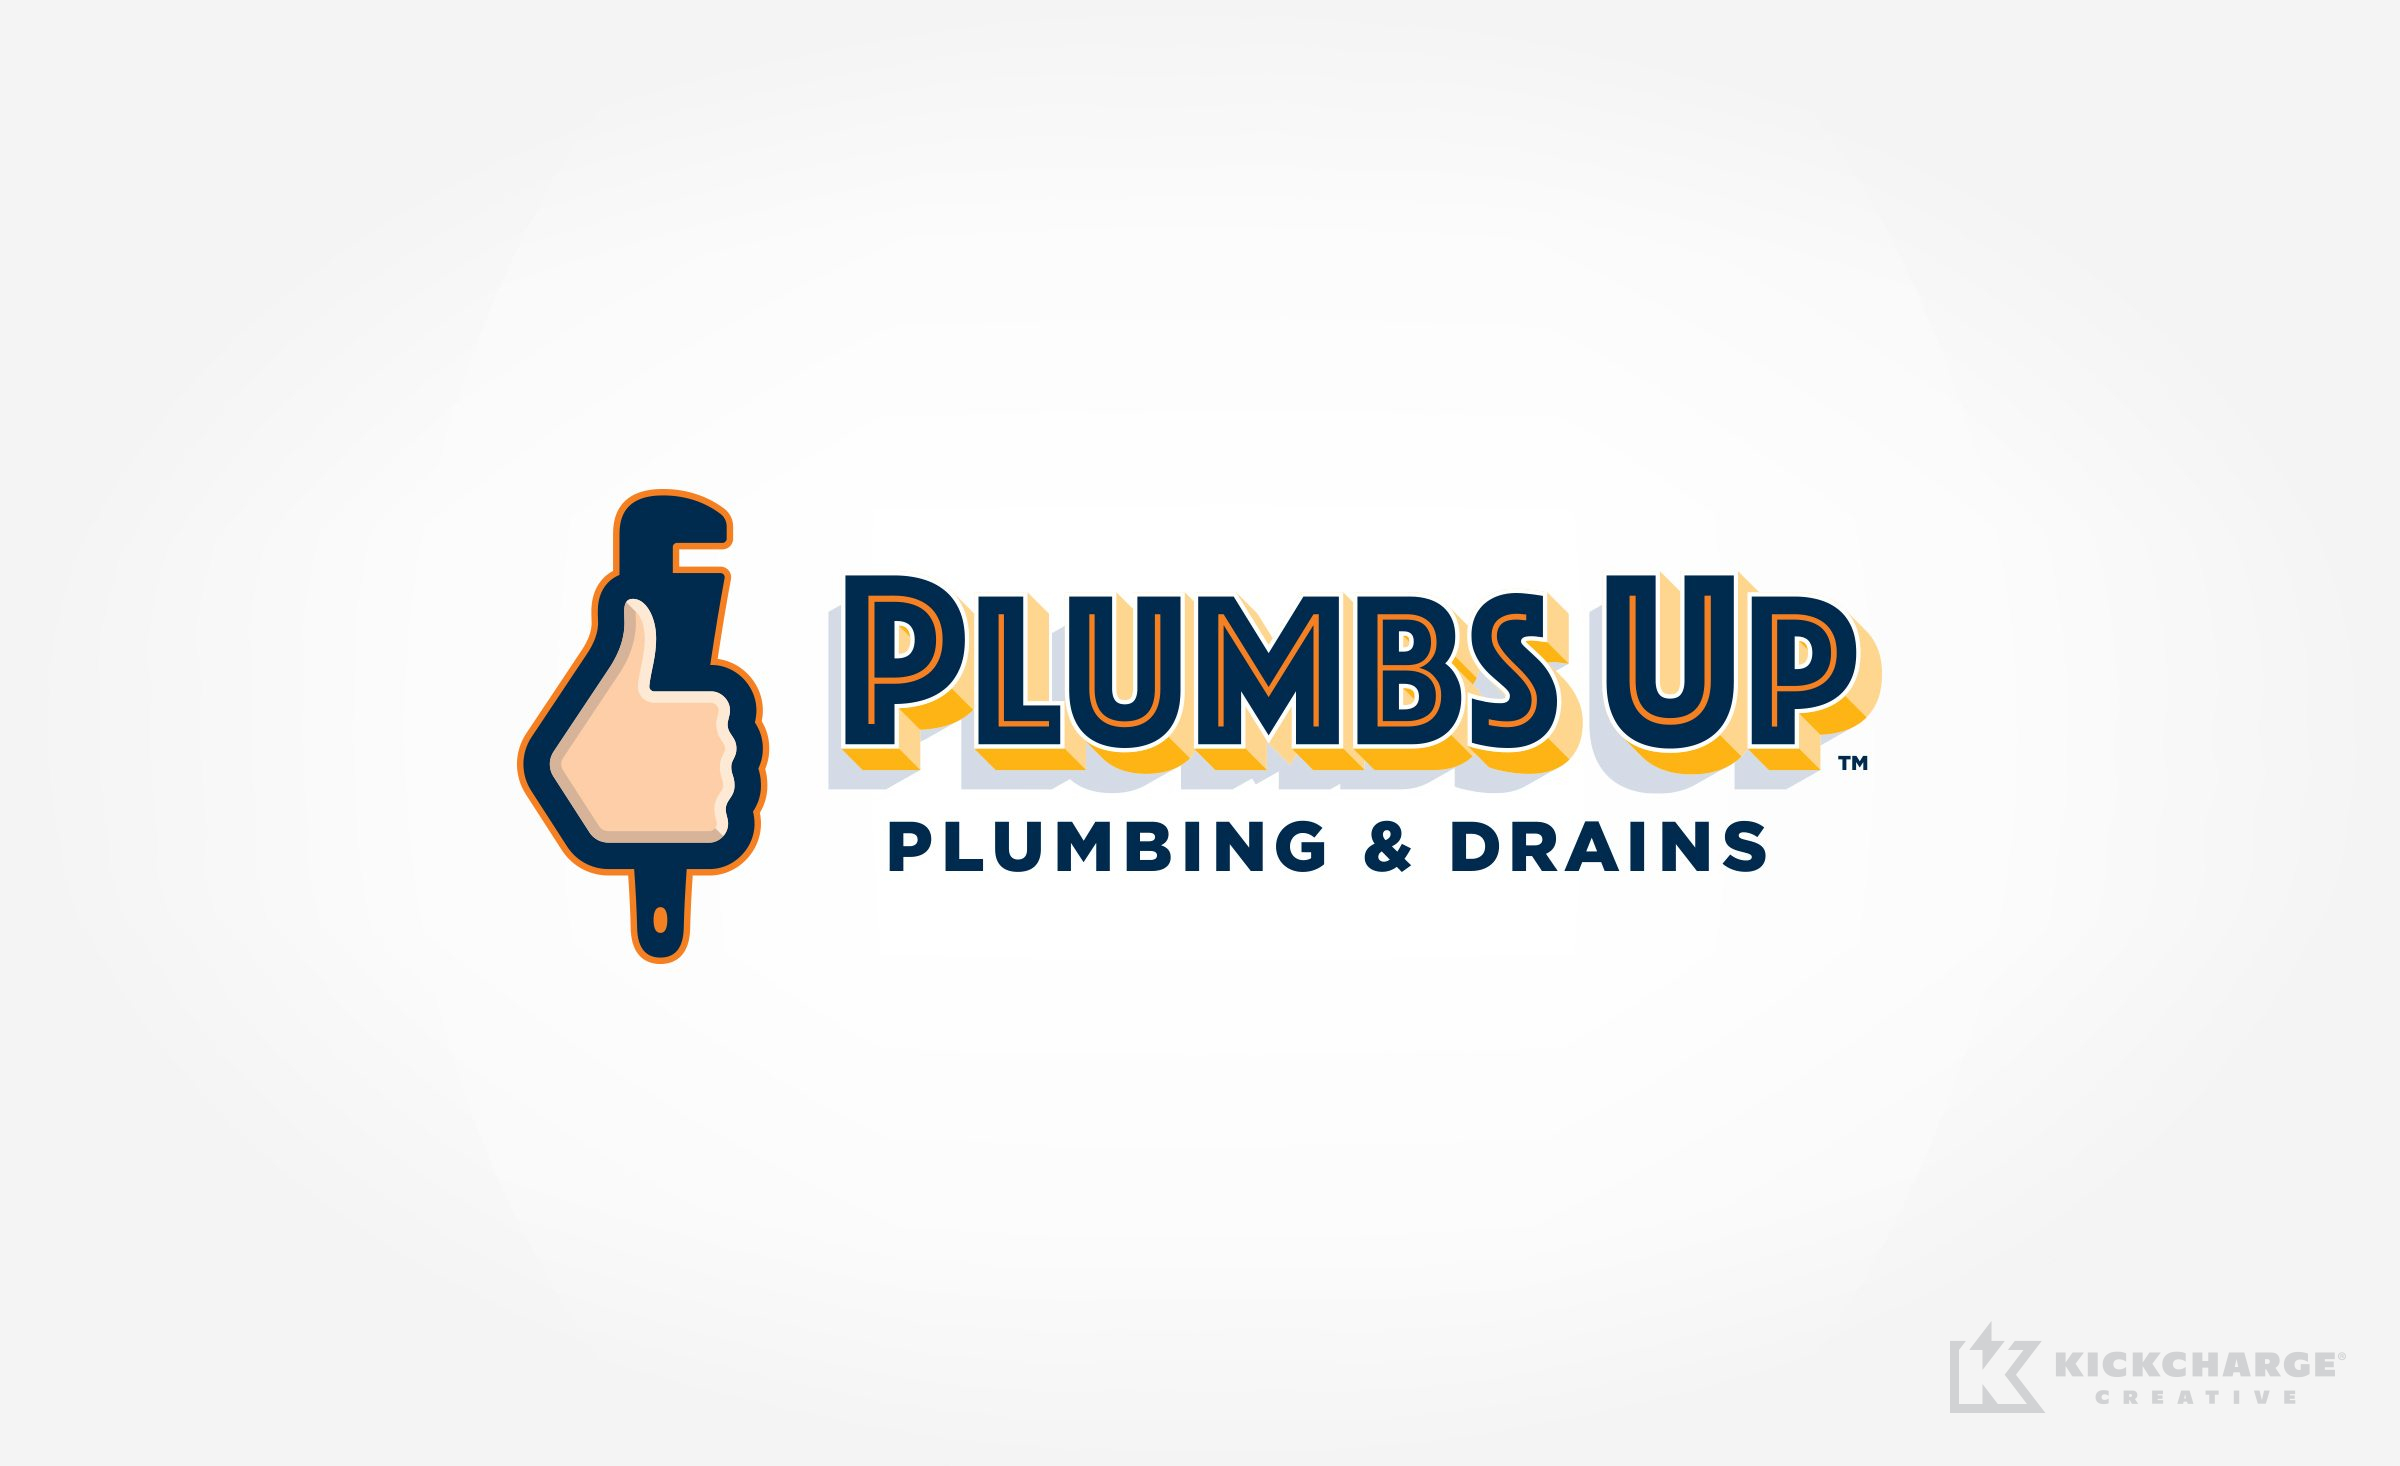 plumbing logo for Plumbs Up Plumbing & Drains